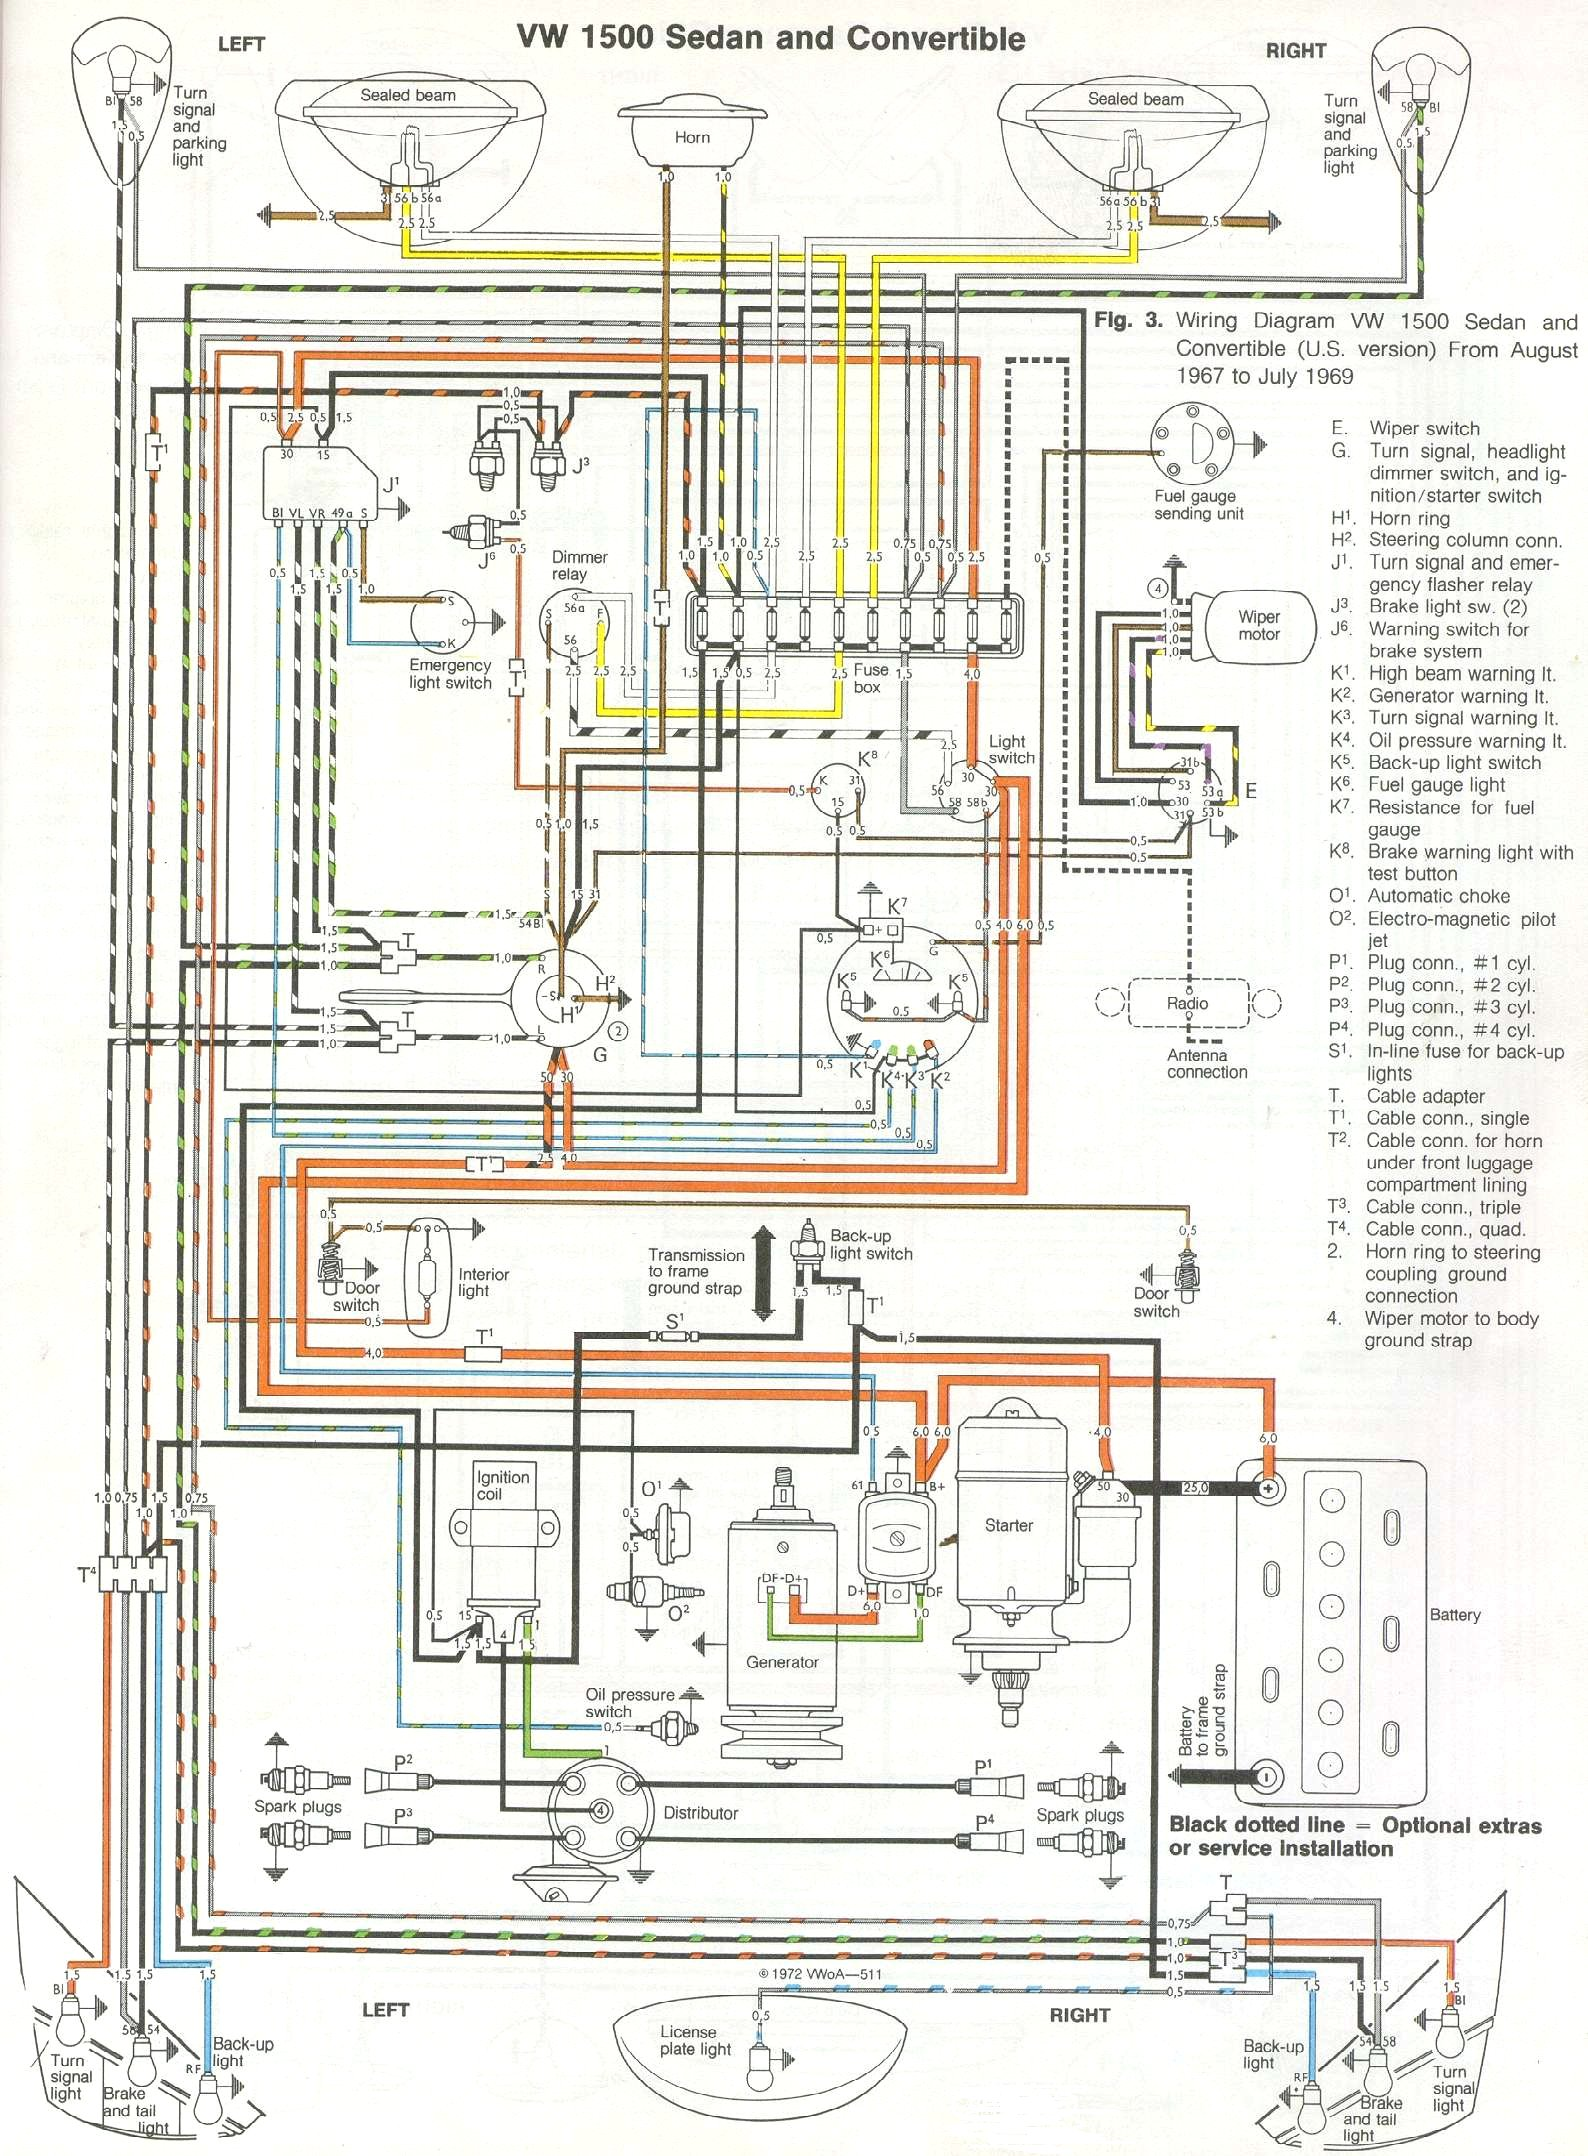 bug_6869 67 vw bus wiring diagram pdf 1957 vw wiring diagram \u2022 wiring  at gsmx.co